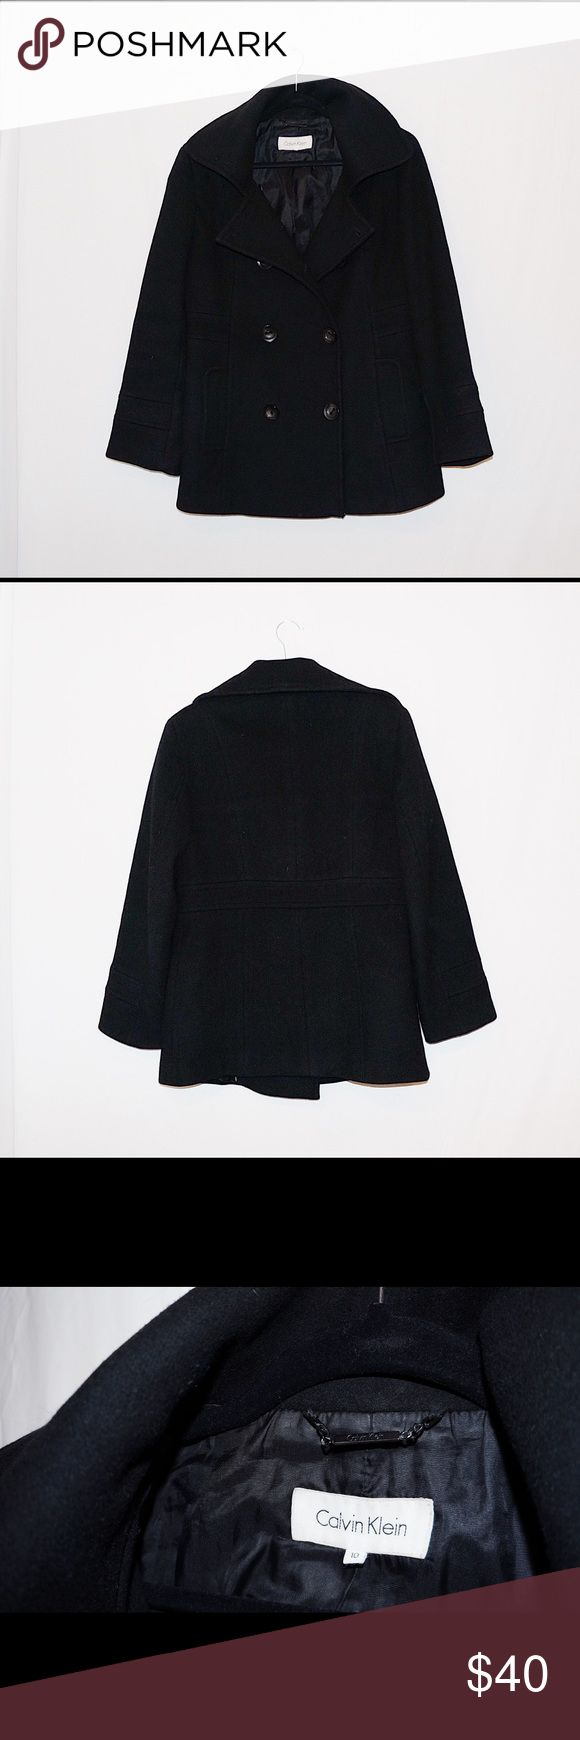 Calvin Klein 100% Wool Women's Peacoat Size 10 Beautiful 100% wool Calvin Klein peacoat, excellent like-new condition, no missing buttons or tears. Calvin Klein Jackets & Coats Pea Coats